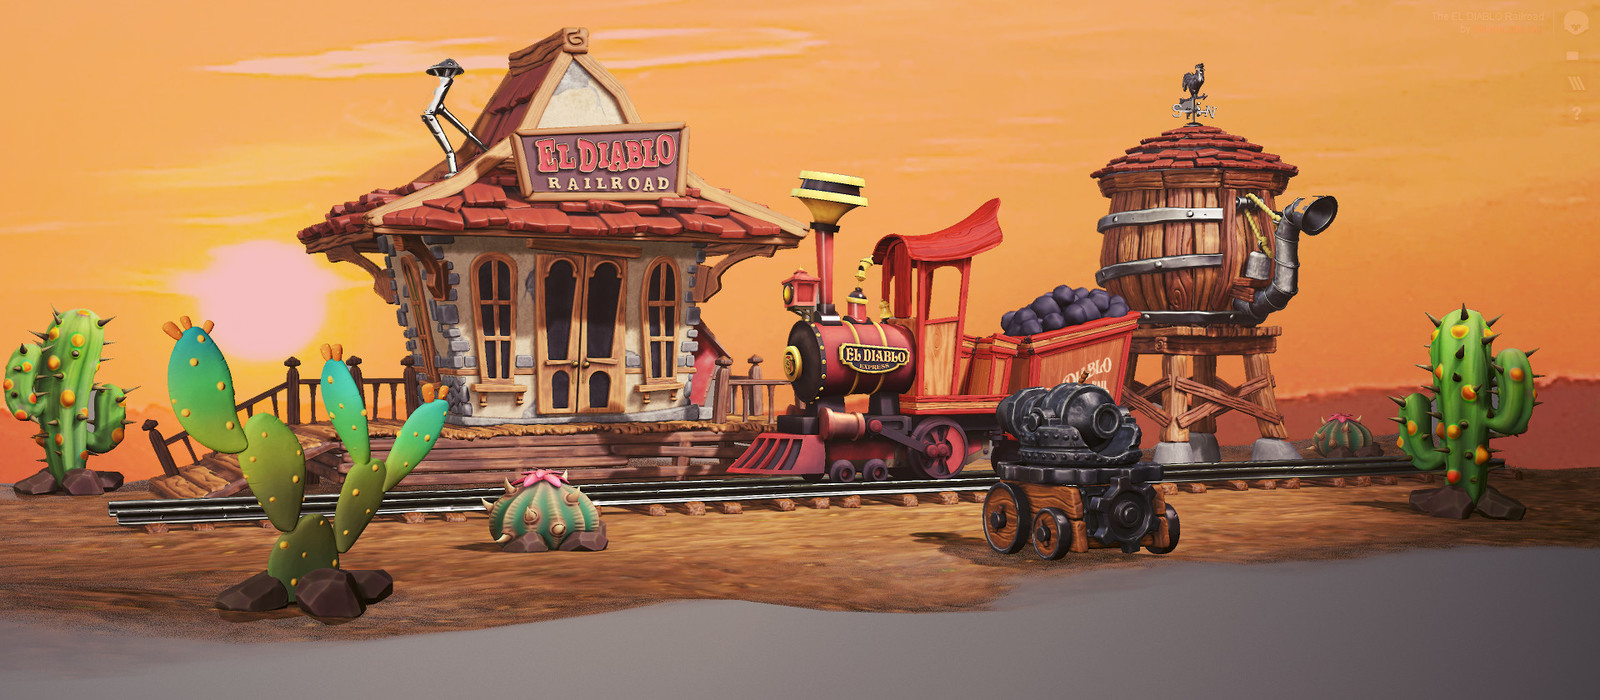 El Diablo - Stylized Wild West